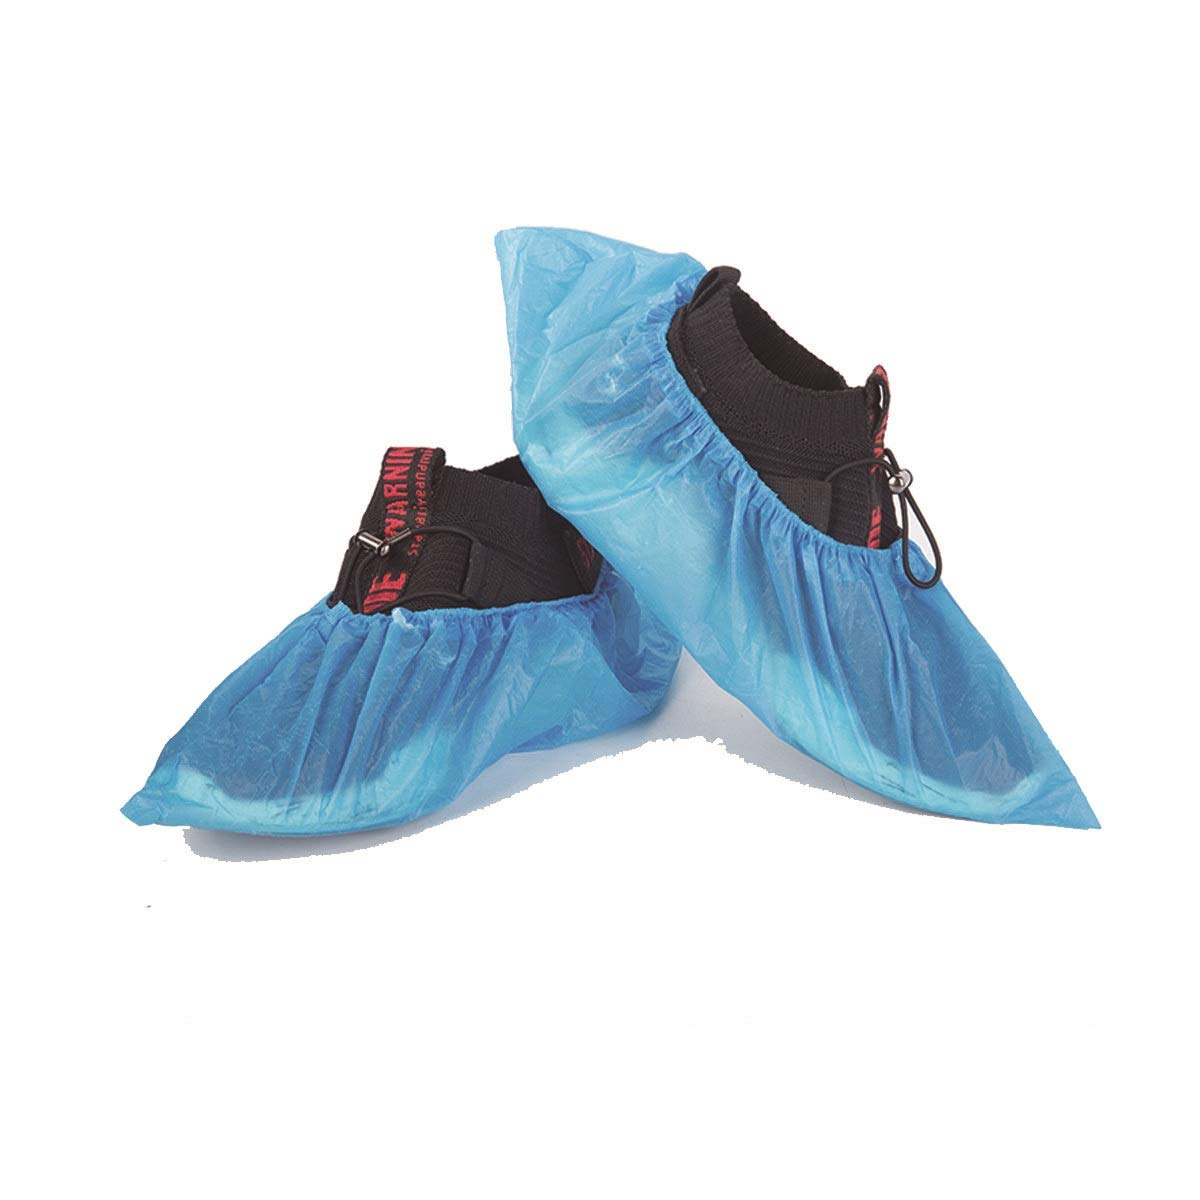 YINJIESHANGMAO Disposable Shoe Cover, CPE Indoor Non-Slip Wear-Resistant Household Waterproof Shoe Cover, Rain Plastic Rainproof Foot Cover, (Size : Three Packs of 300)